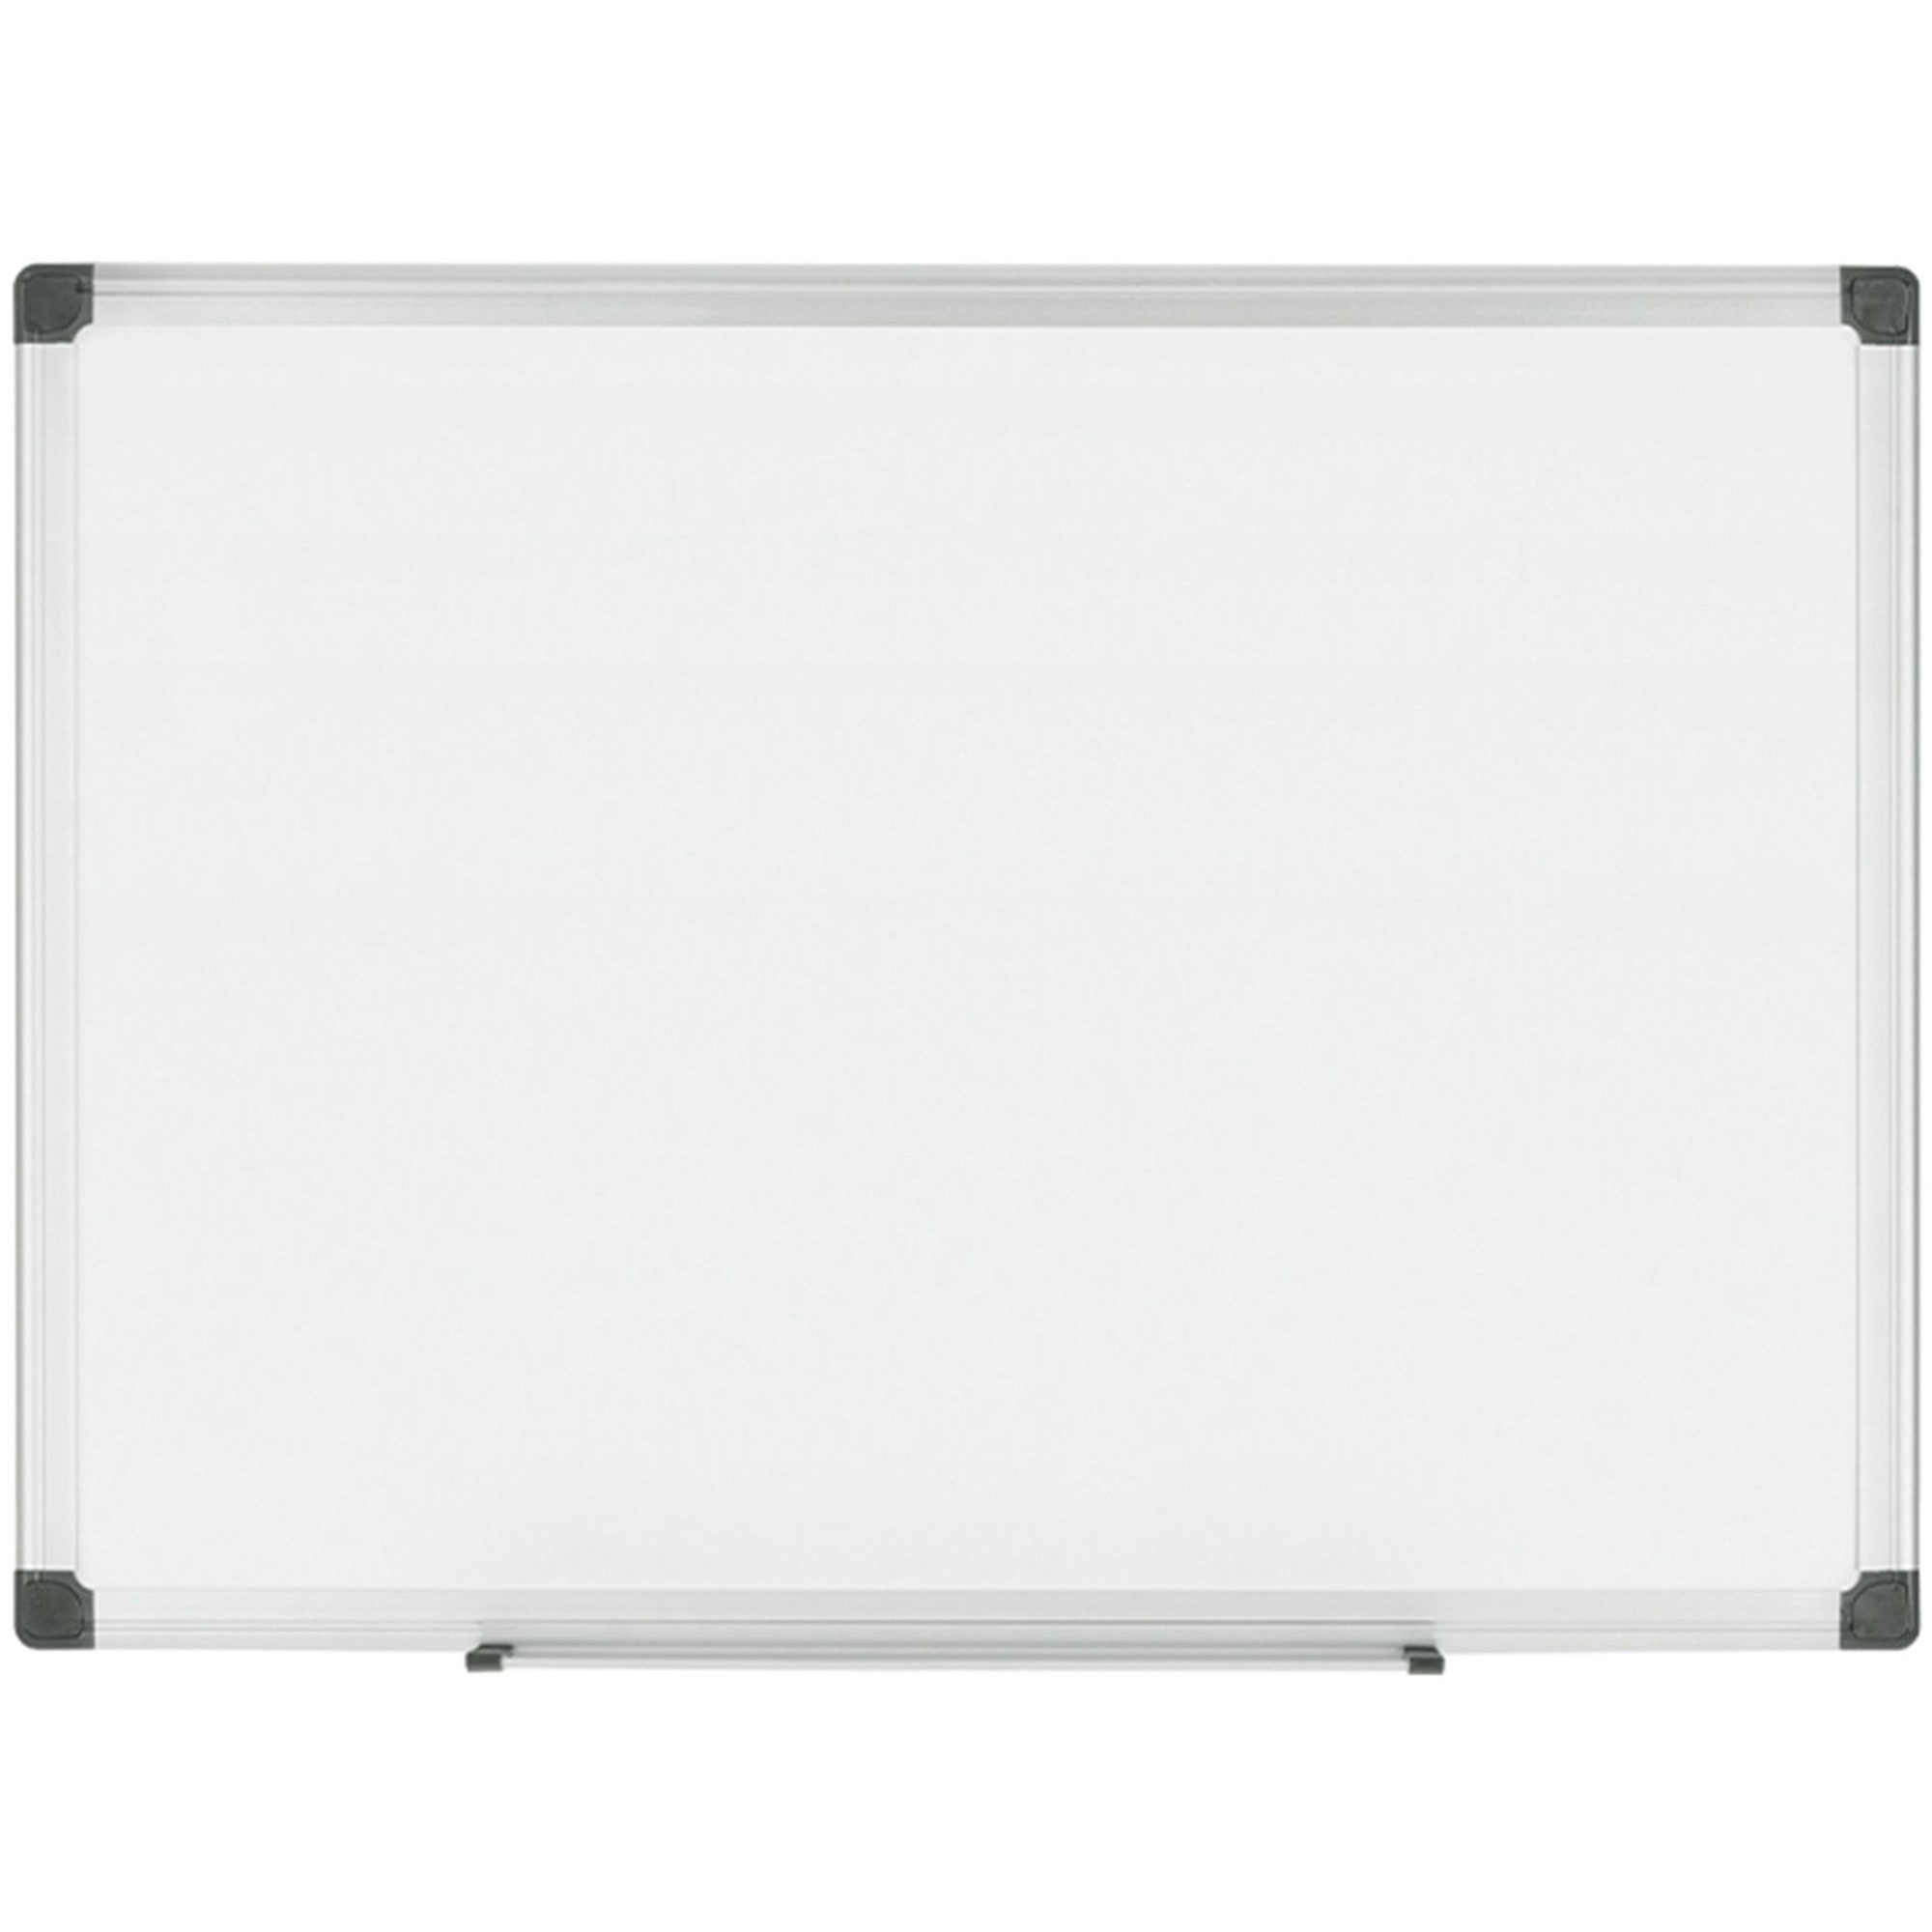 Bi-silque S.a Mastervision Porcelain Magnetic Dry Erase Board - 36 (3 Ft) Width X 24 (2 Ft) Height - White Porcelain Surface - Silver Aluminum Frame - Rectangle - Horizontal/vertical - Mount - 1 Each